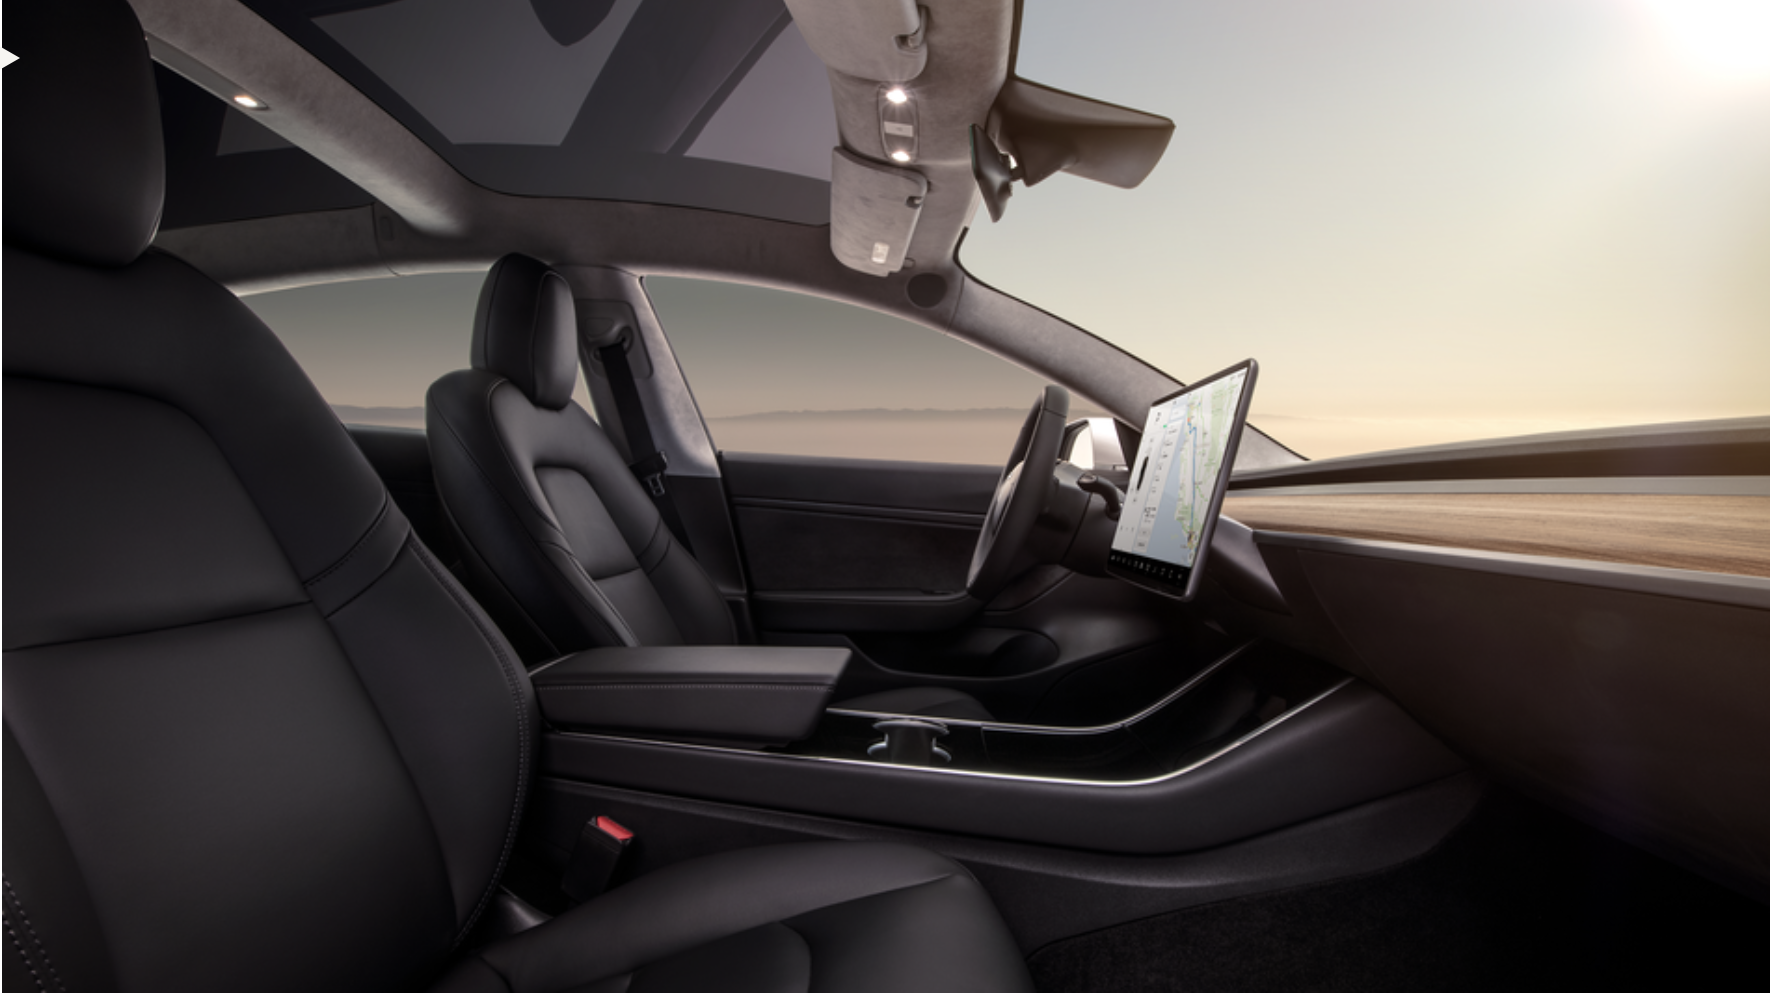 Tesla Model 3 Interior Design